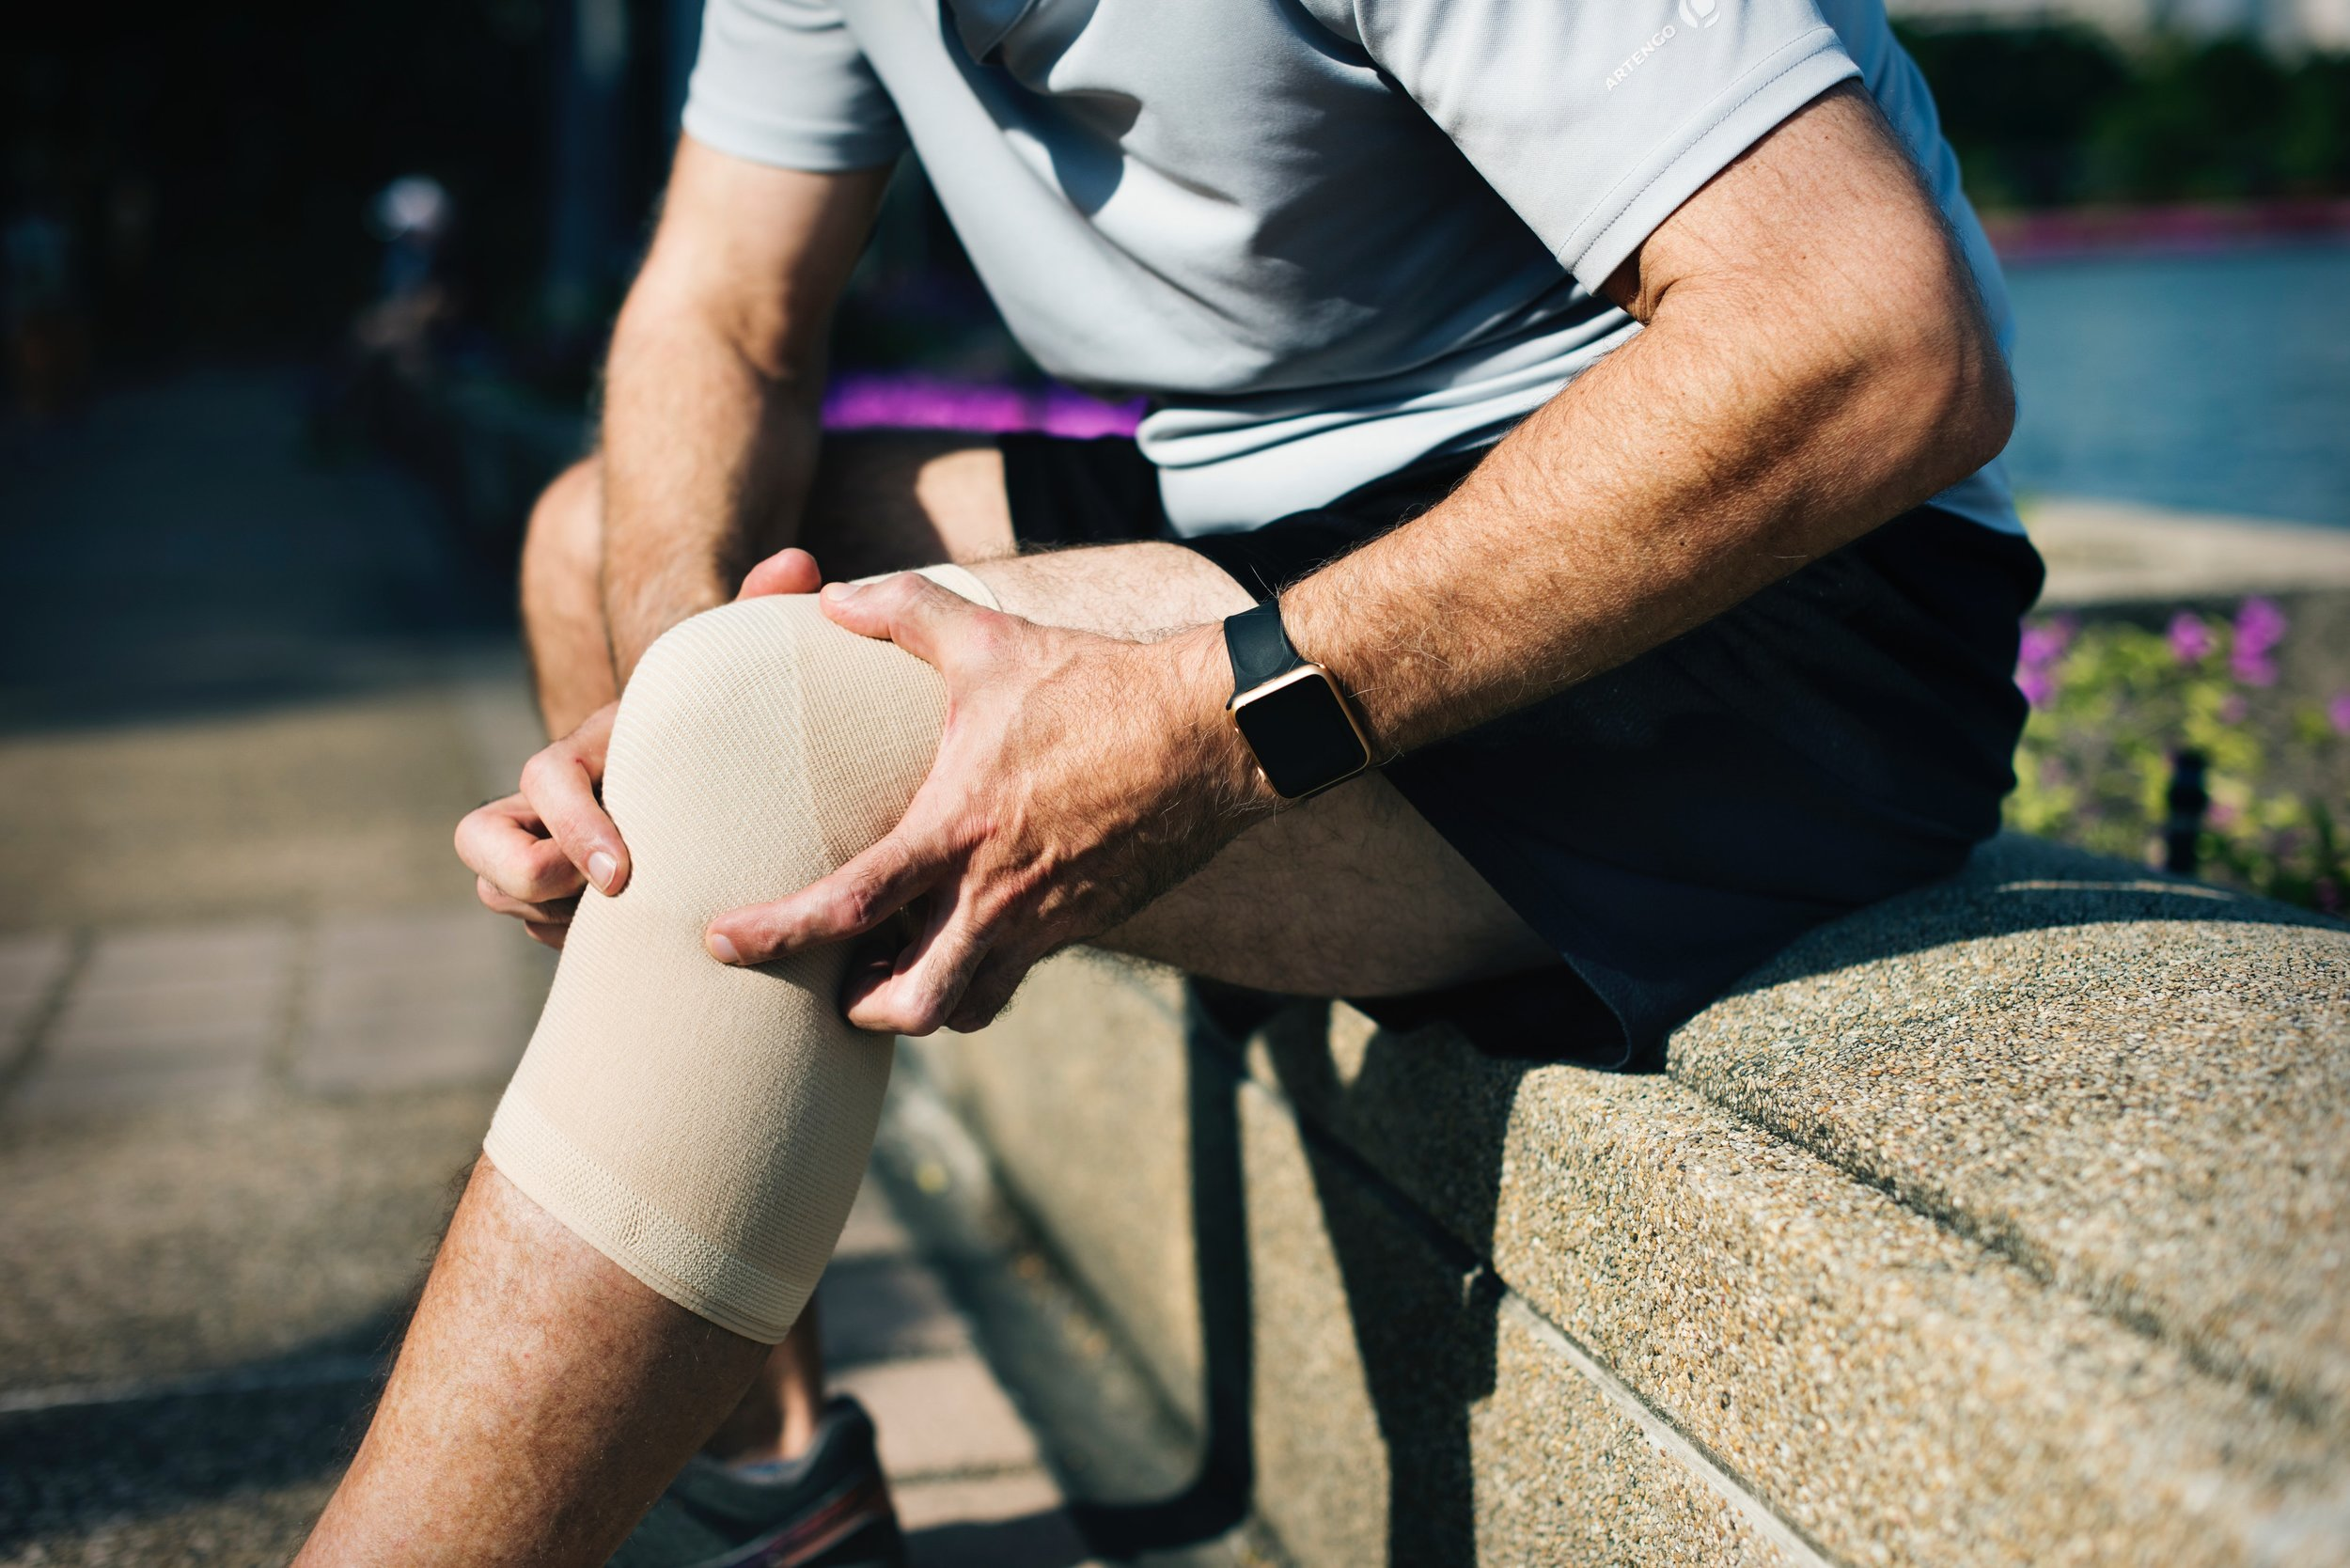 Young man in pain with a bandage around his knee who needs rehabilitation from an injury in Yaletown, Vancouver